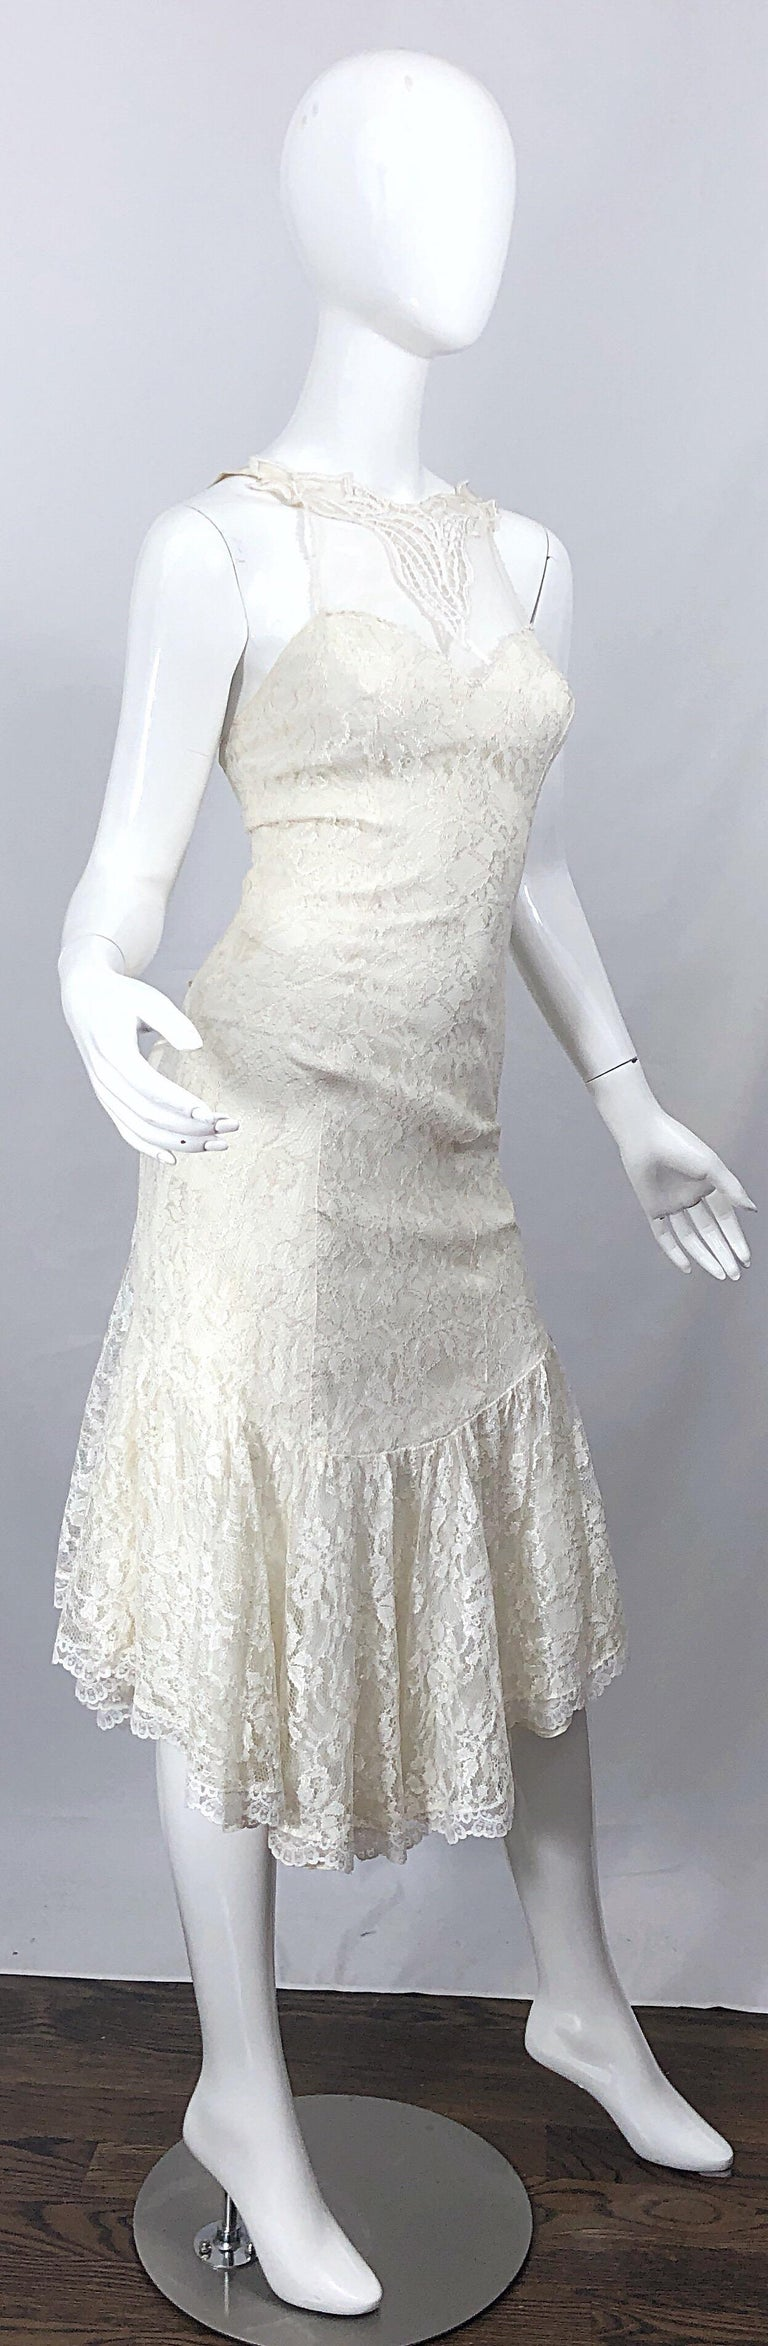 1980s Samir Ivory White Lace Handkerchief Hem Embroidered Vintage 80s Dress For Sale 5